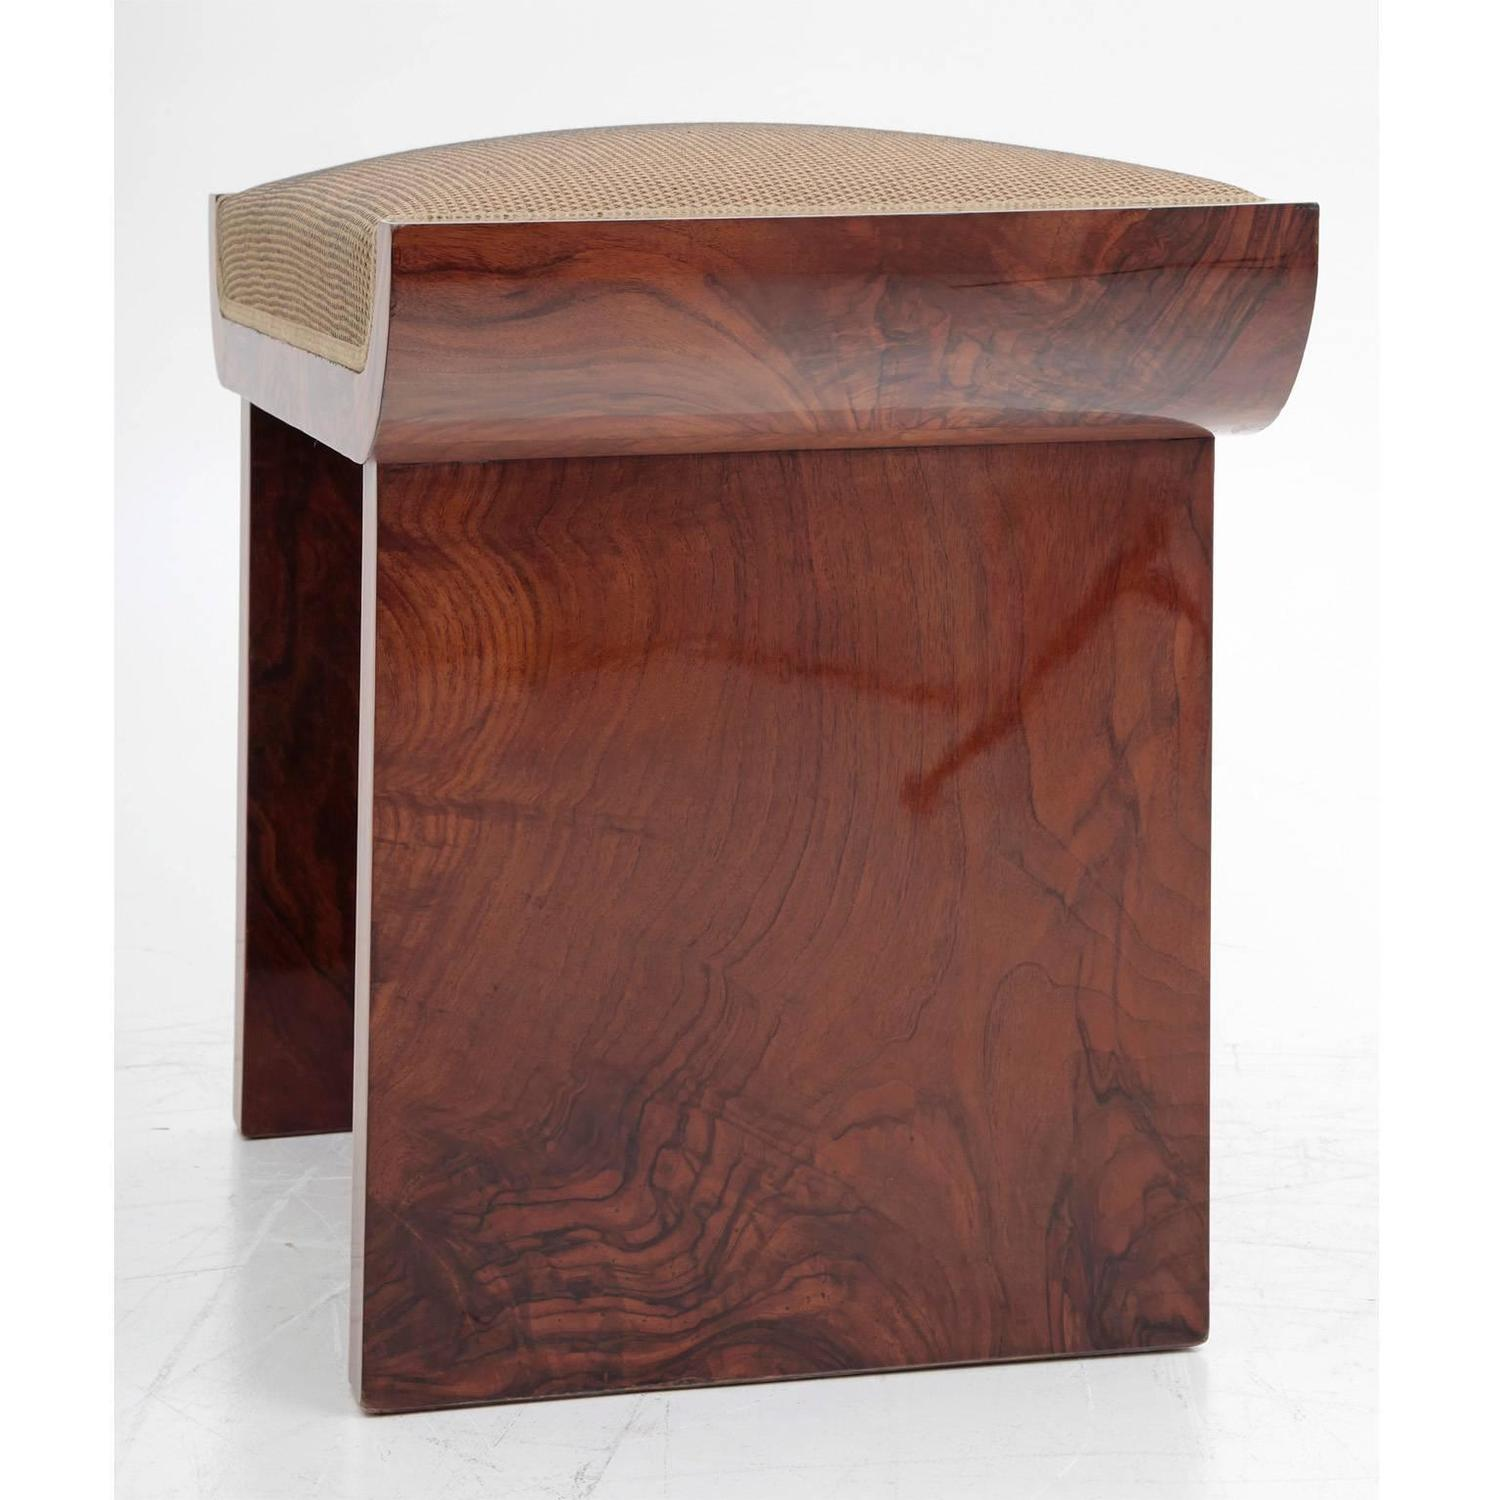 Stool art deco france circa 1920 for sale at 1stdibs for Deco francaise